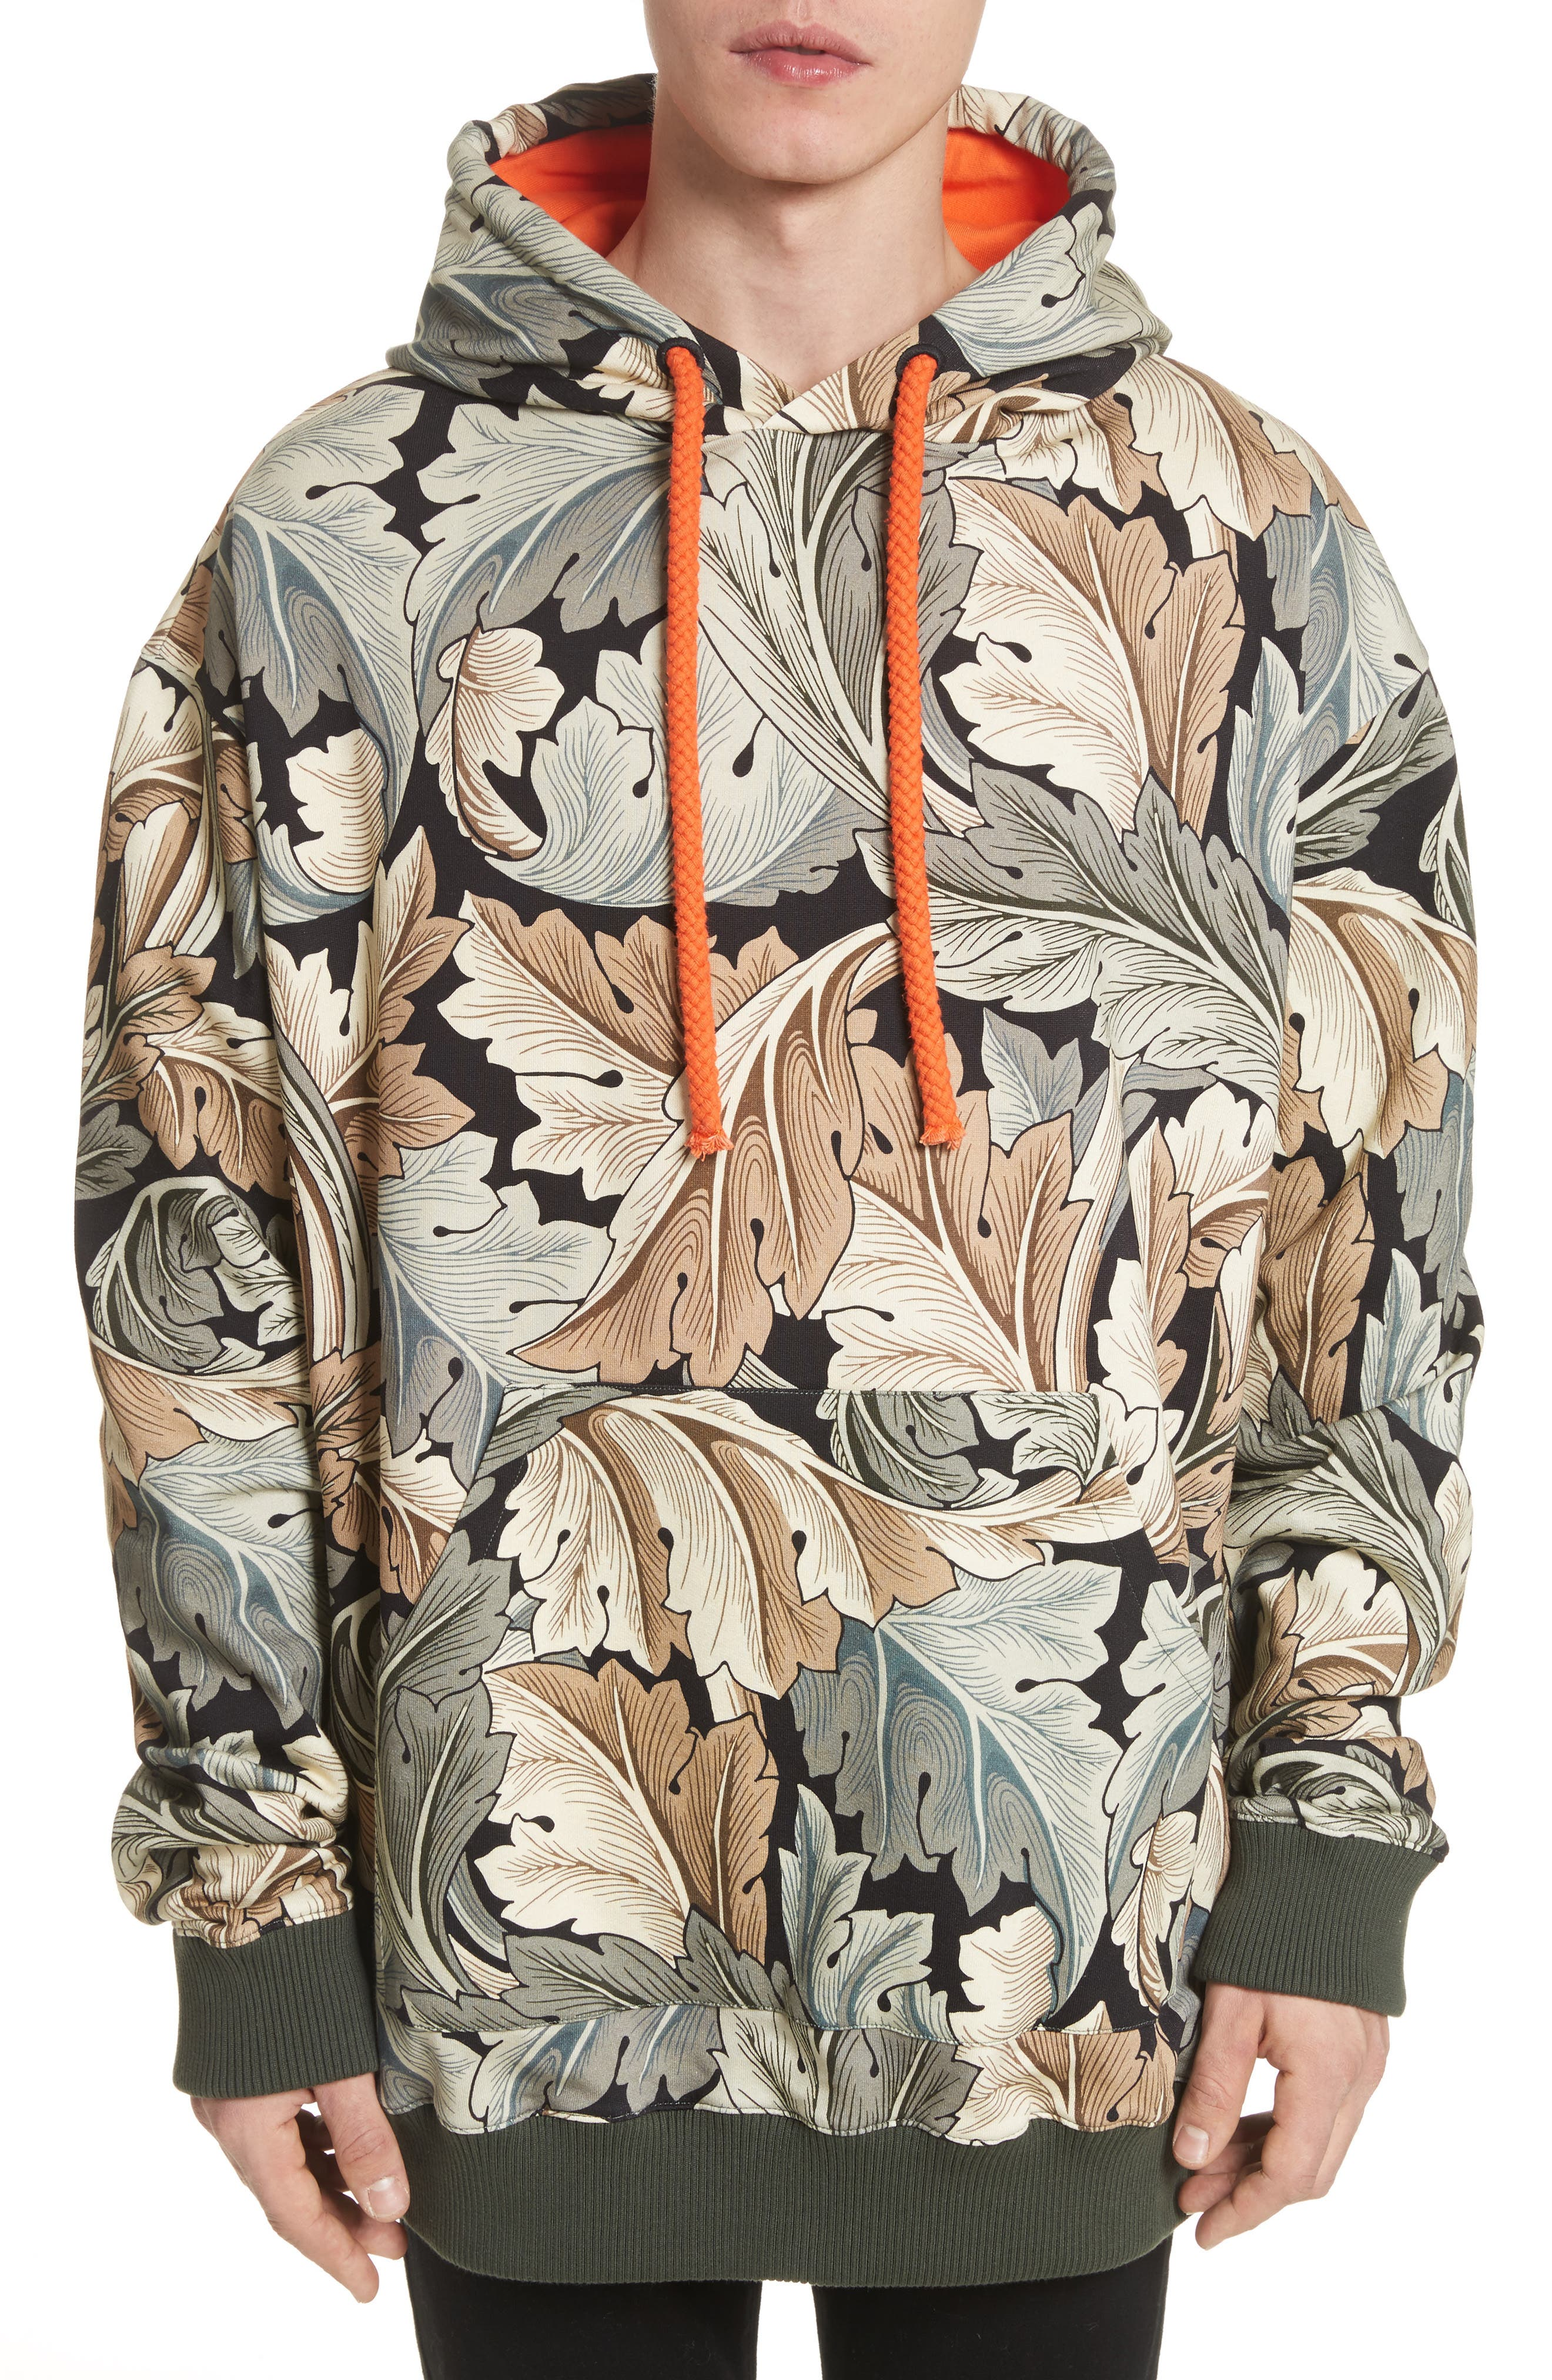 William Morris Print Oversize Hoodie,                         Main,                         color, 100